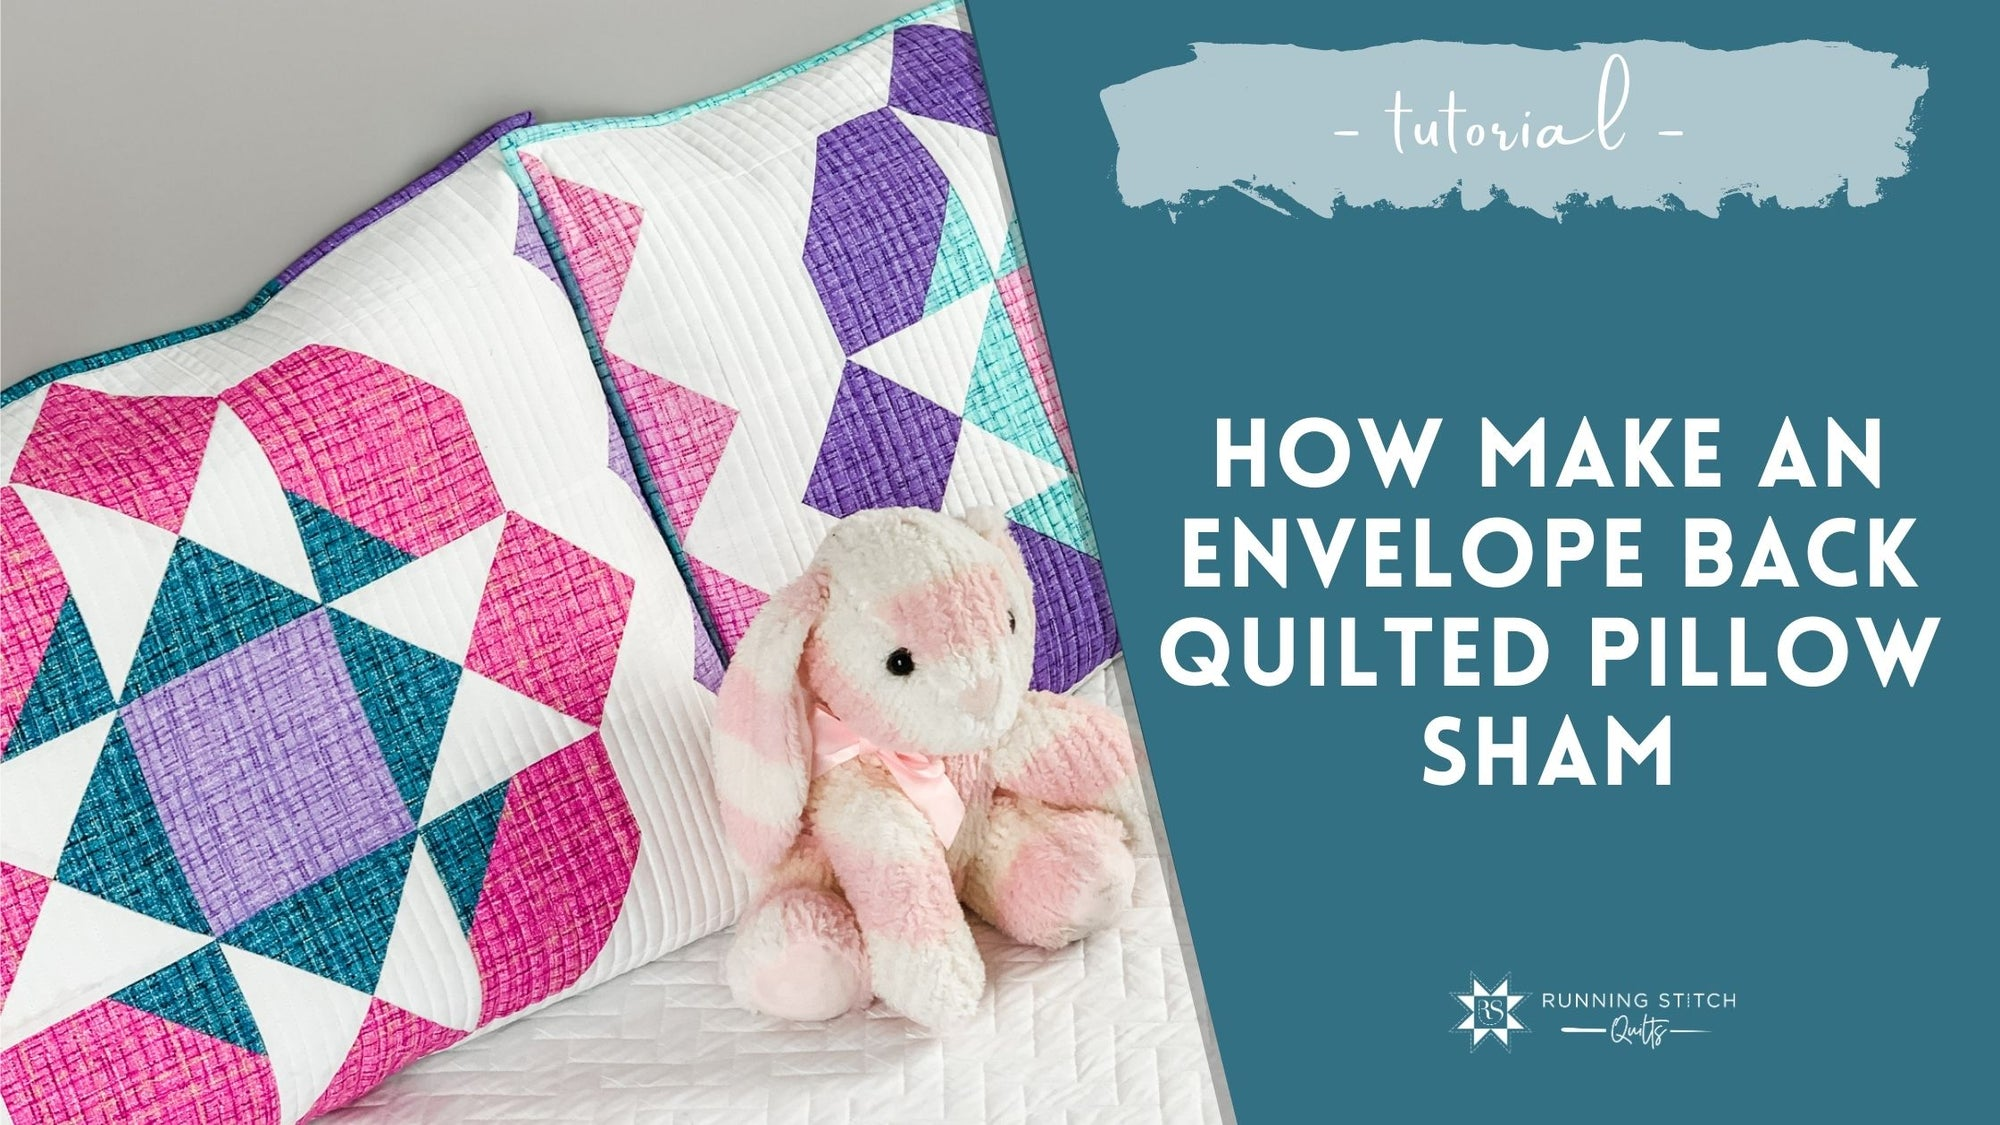 How to Make an Envelope Back Quilted Pillow Sham